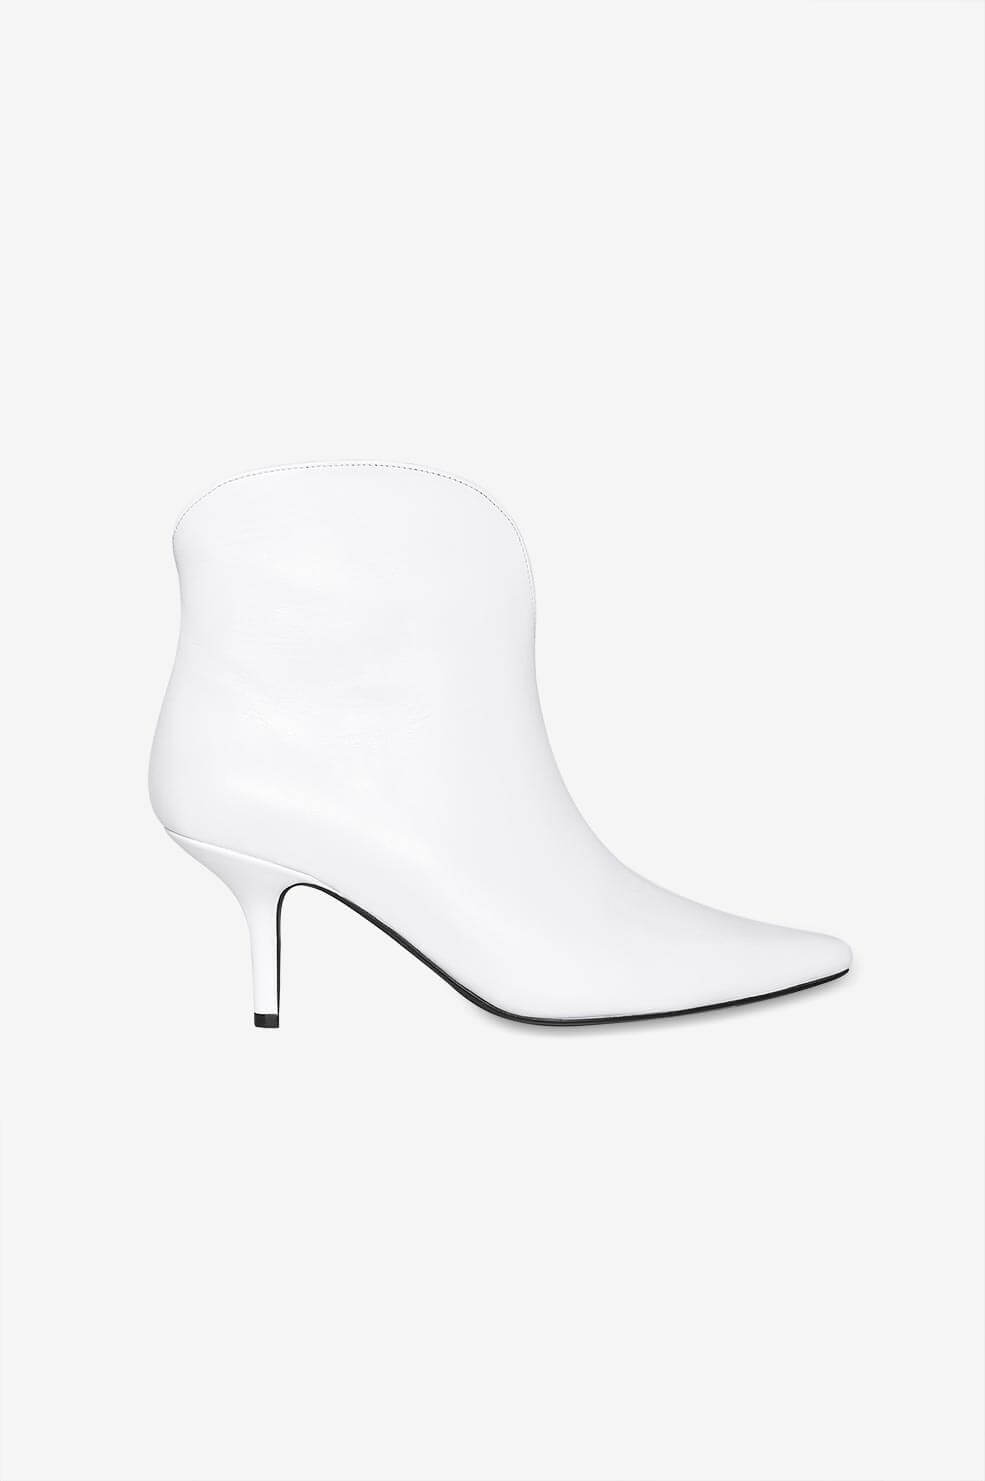 0a22cafdc1f Anine bing annabelle boots white jpg 985x1481 White black boots